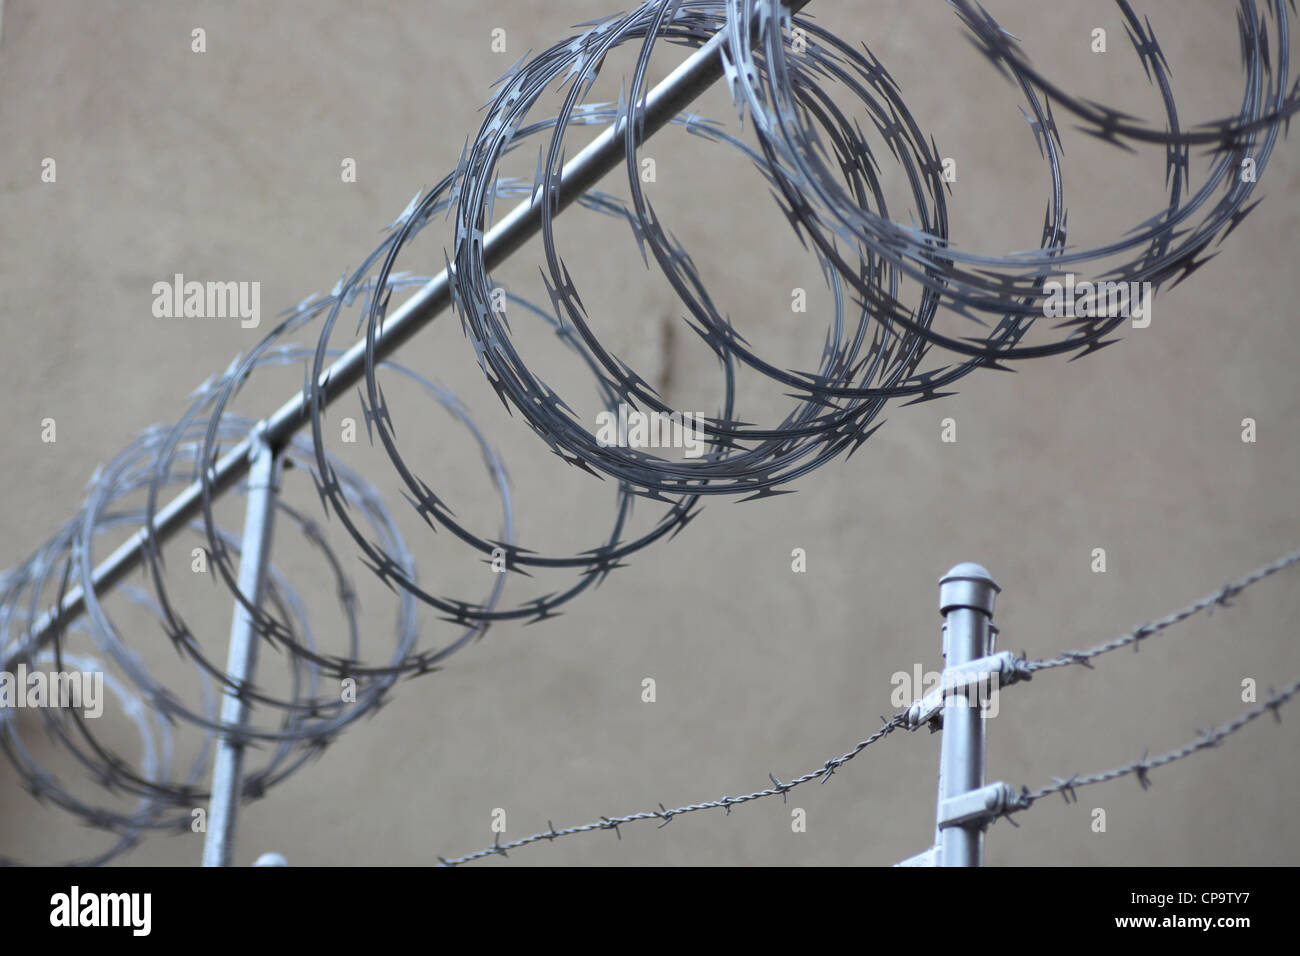 Razor wire above barbed wire fence Stock Photo: 48160315 - Alamy